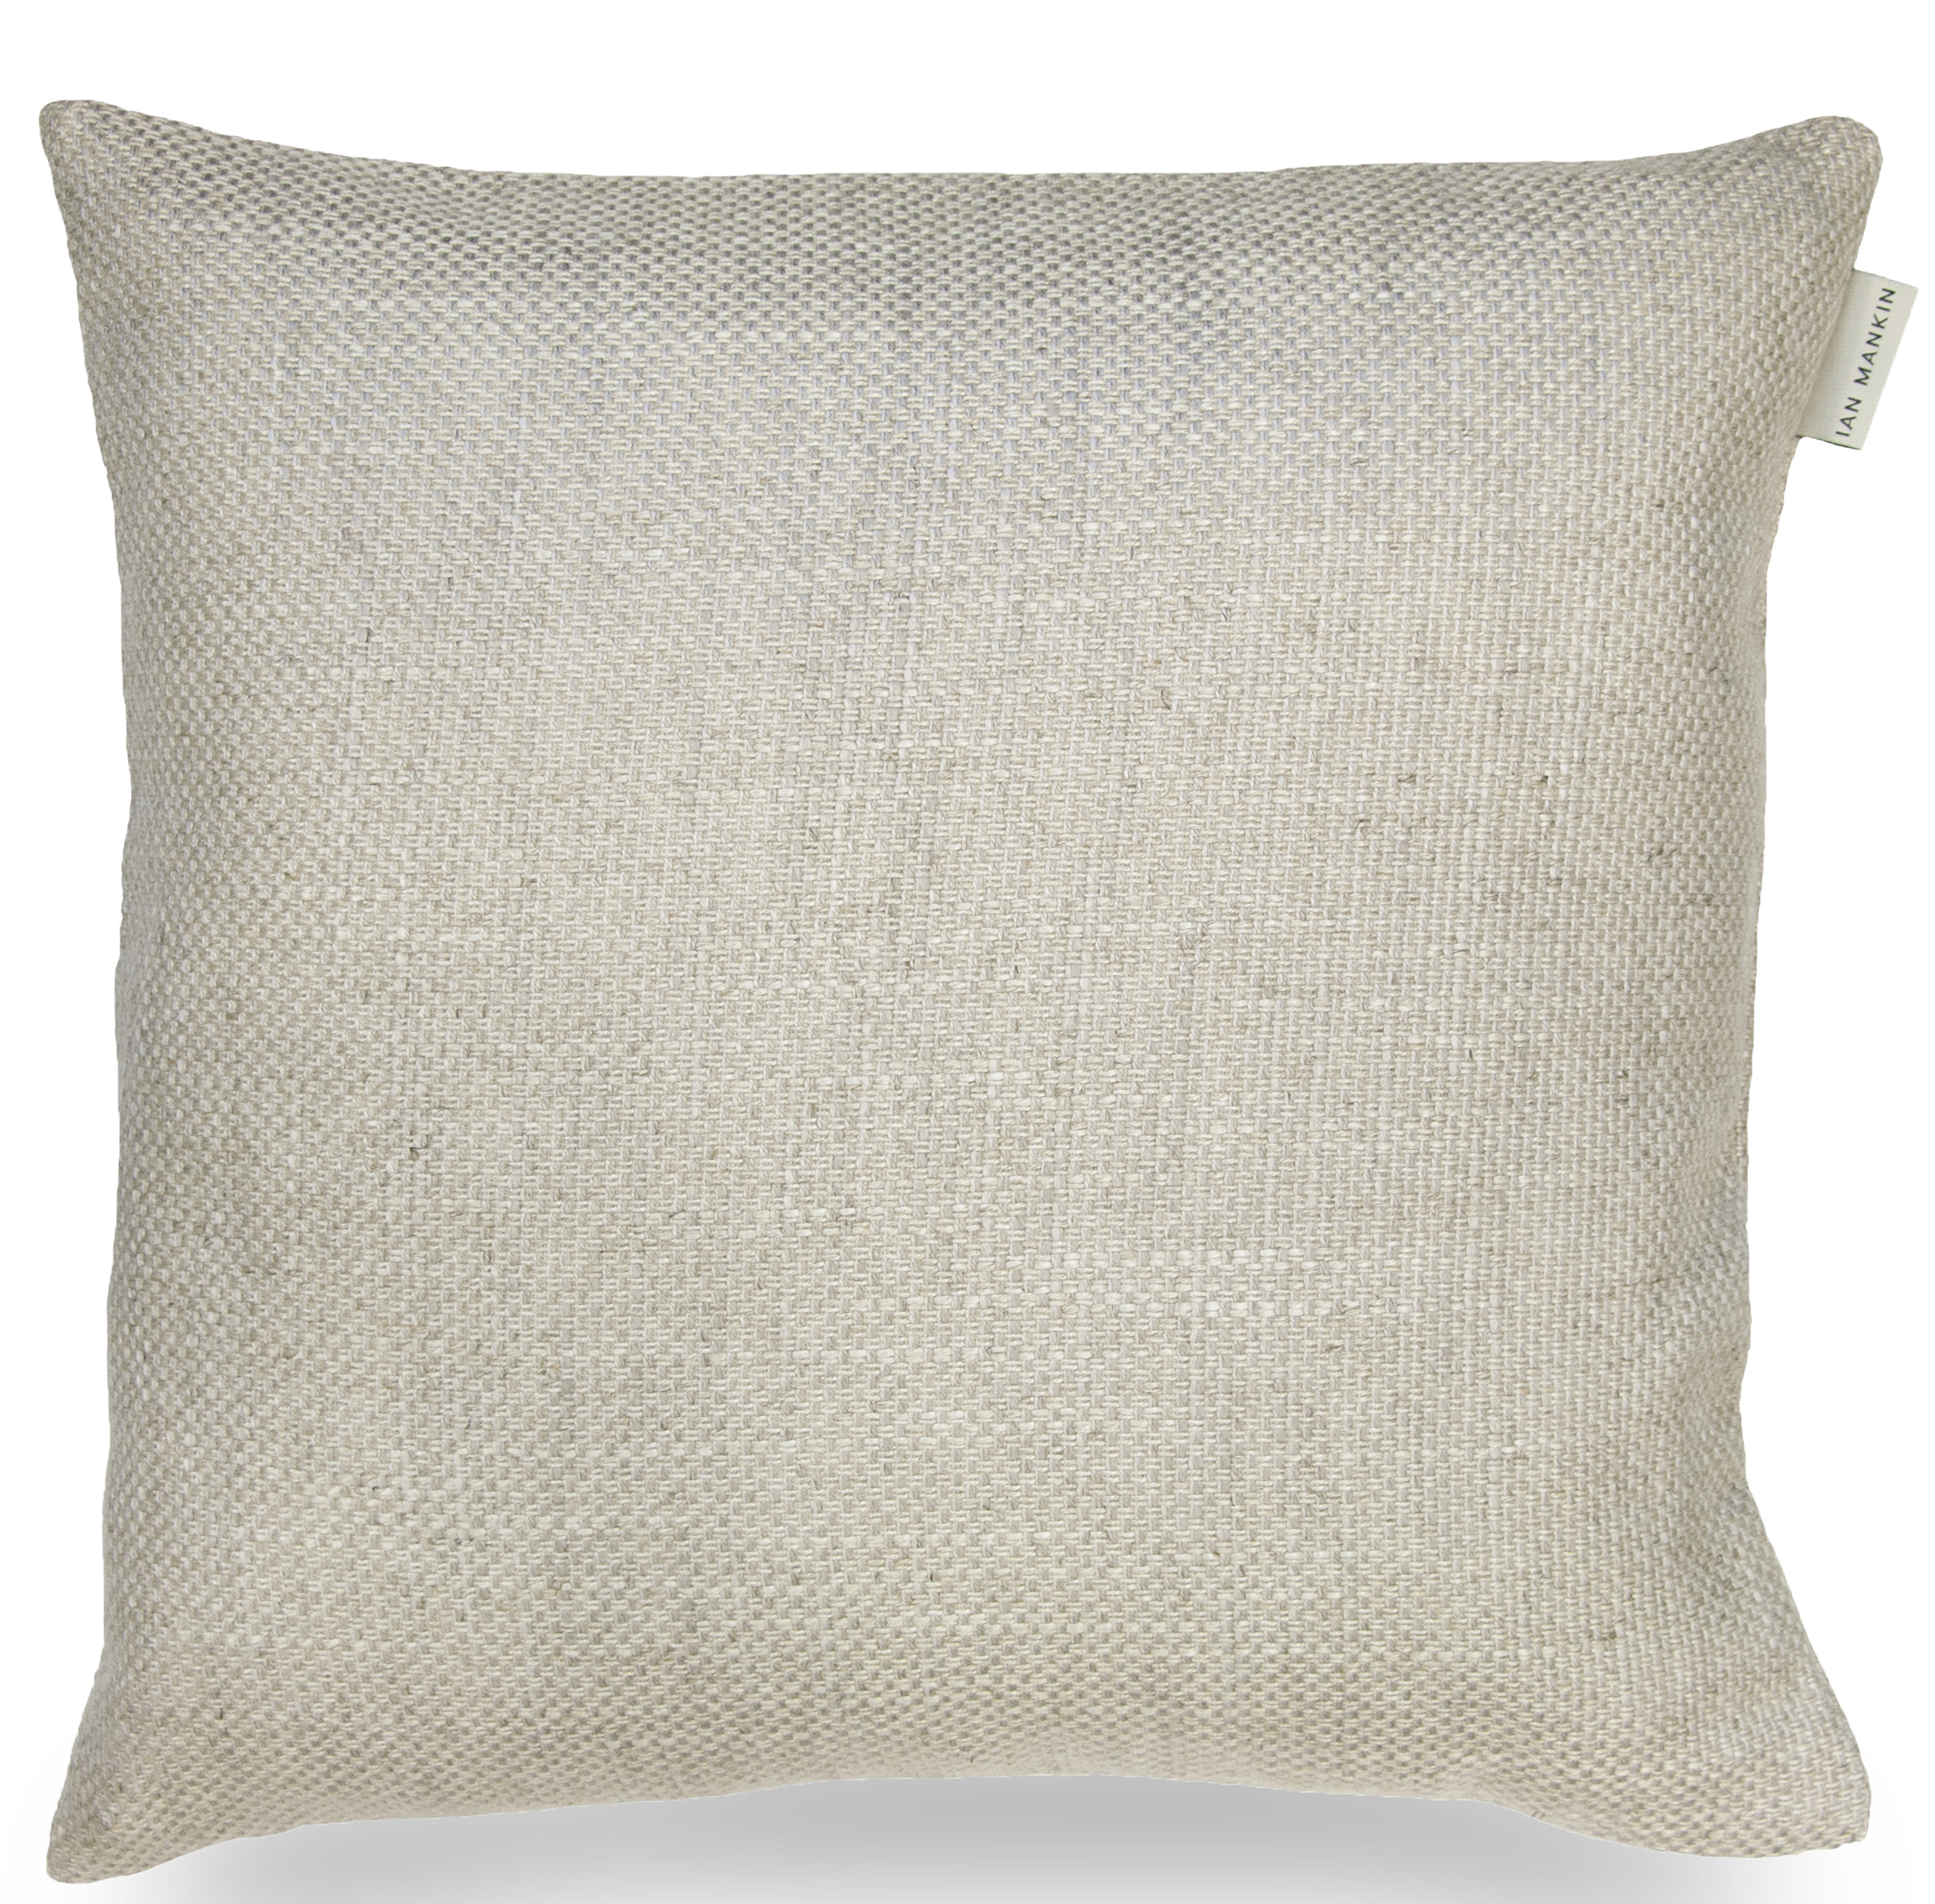 Ian Mankin Perth Light Grey Cushion CU190 104 4040 40x40cm